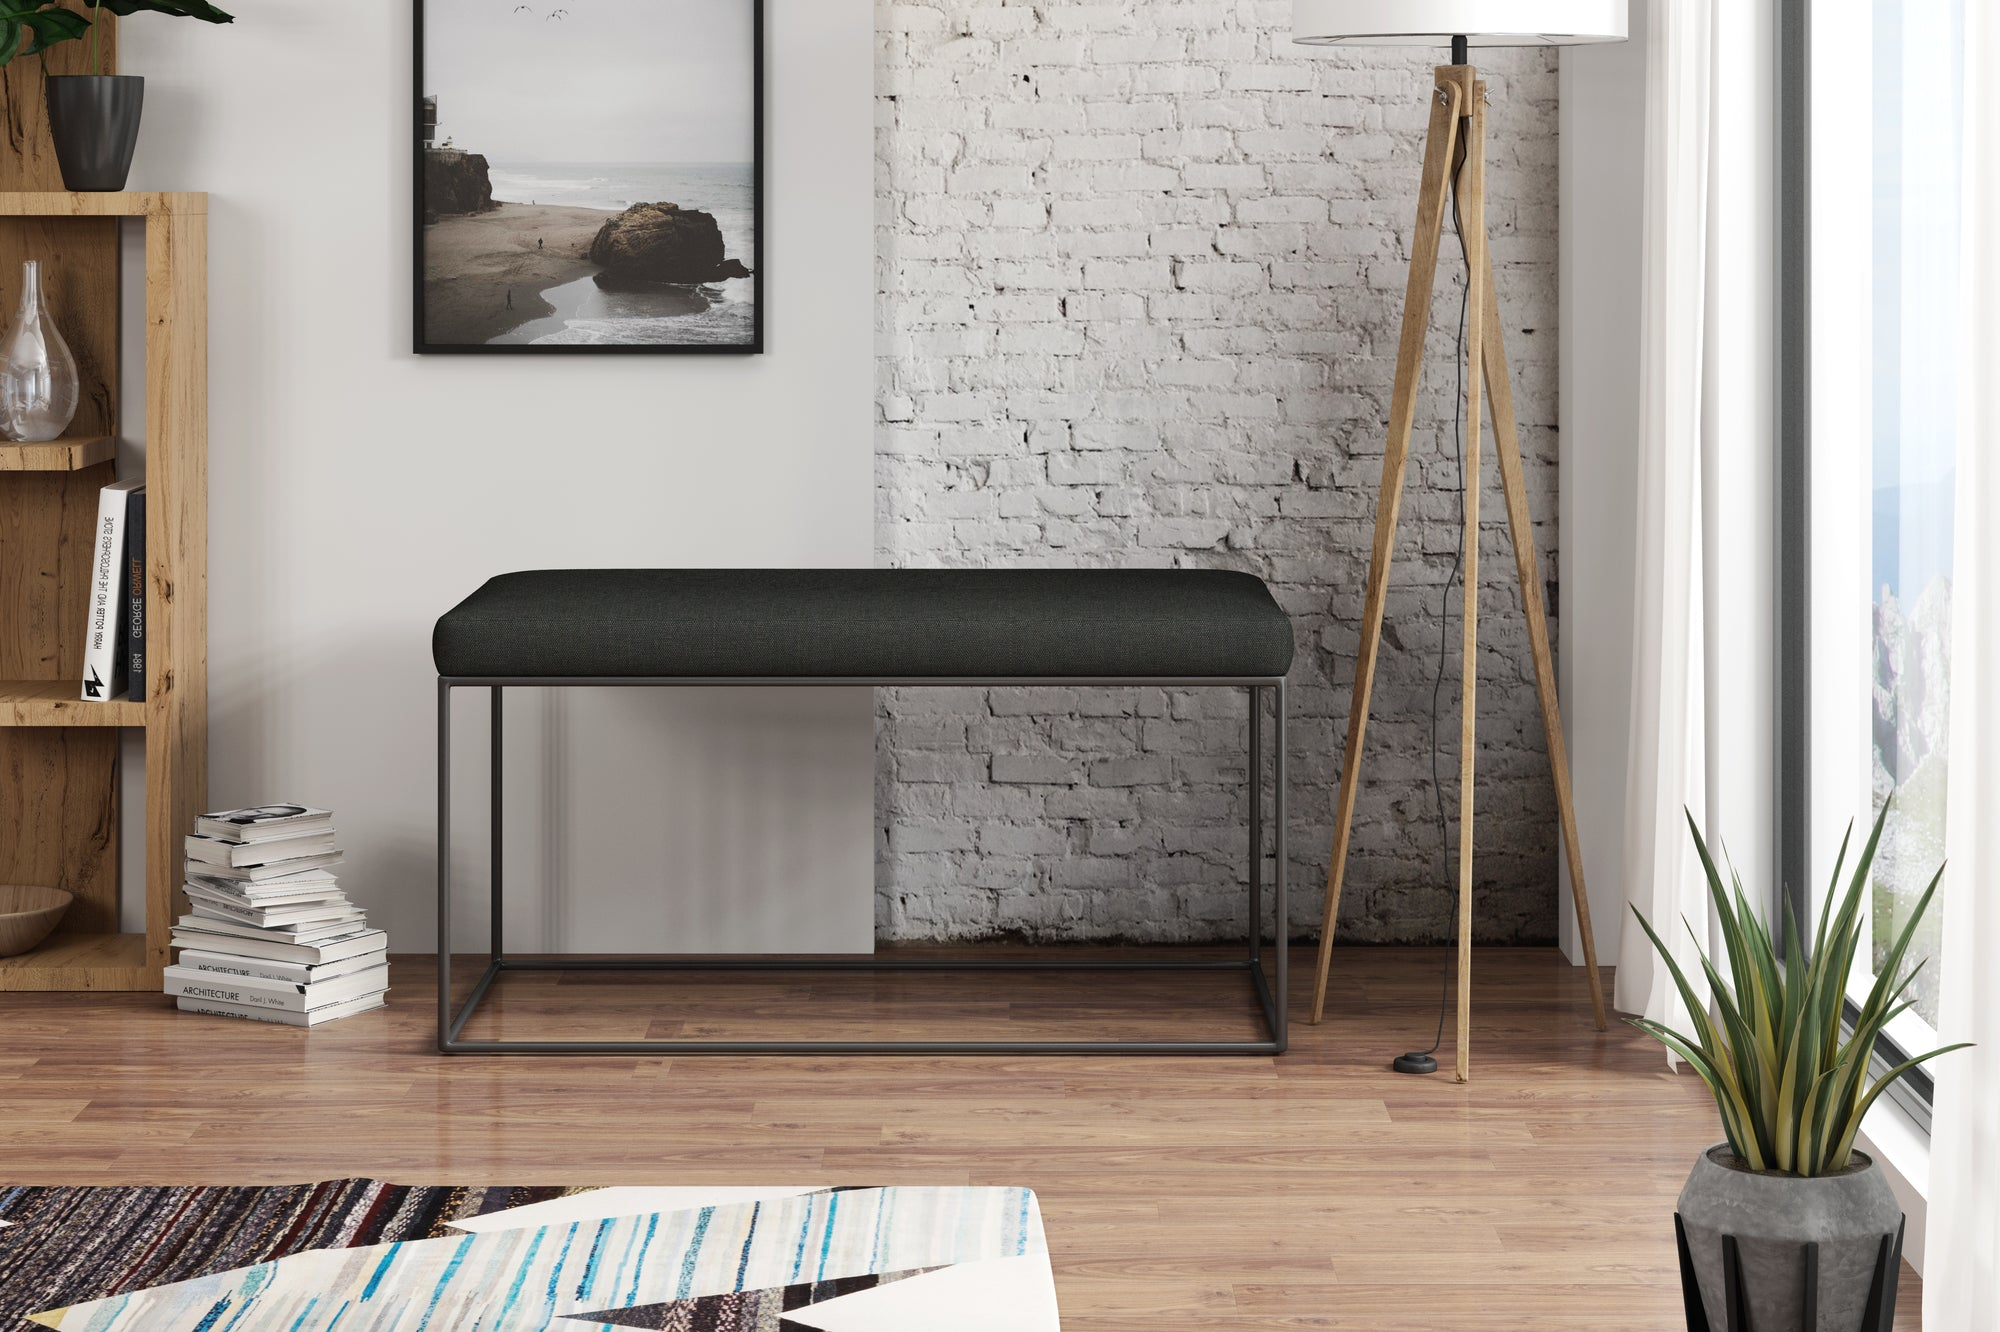 Banquette - Collection Gloire - 45 x 90 x 47 cm - Gris Anthracite